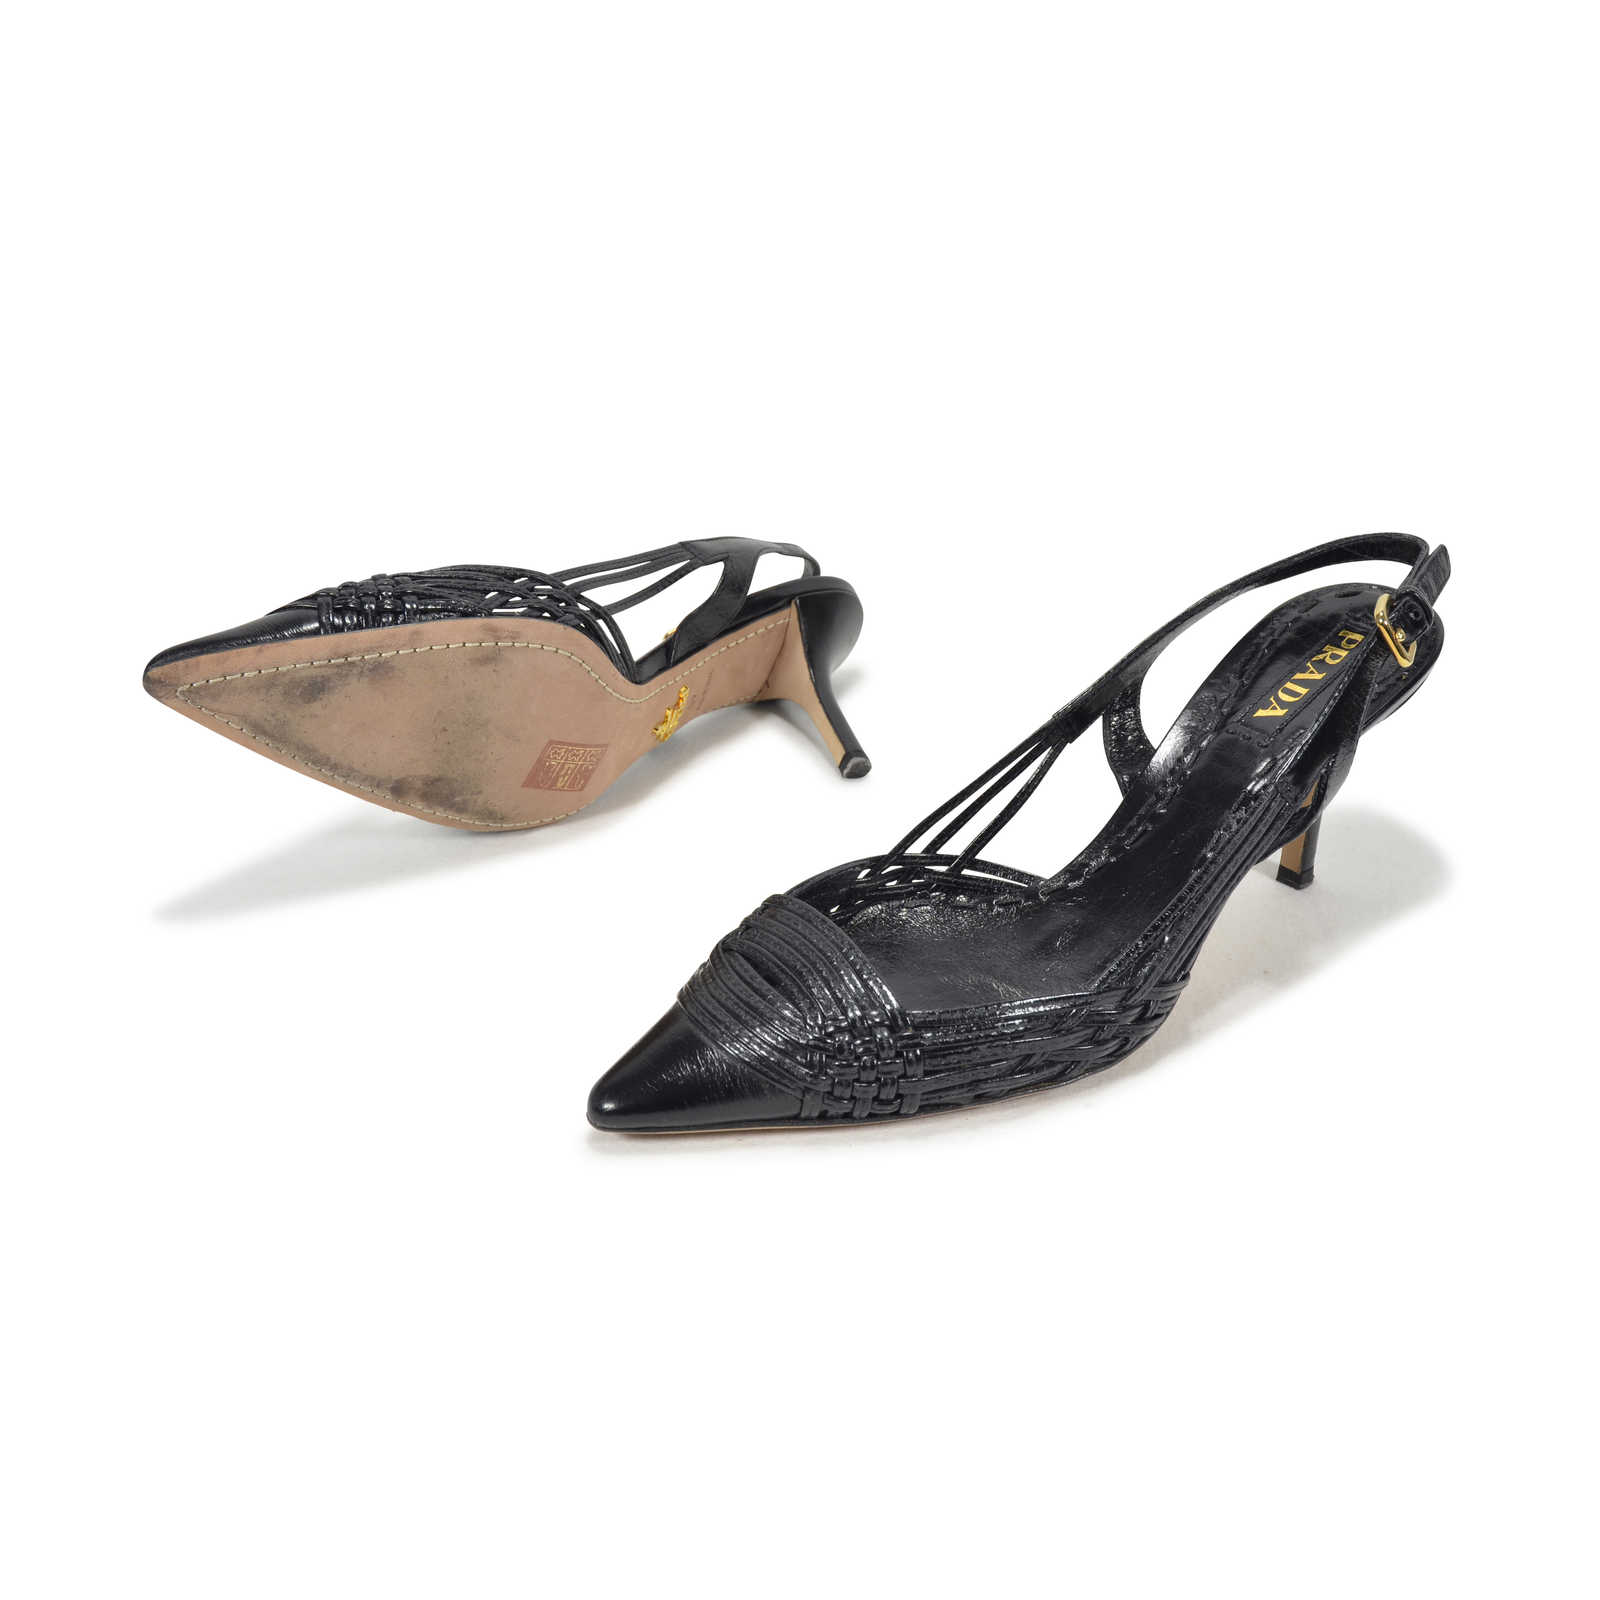 Prada Woven Slingback Sandals Clearance Enjoy OEExEhXFr